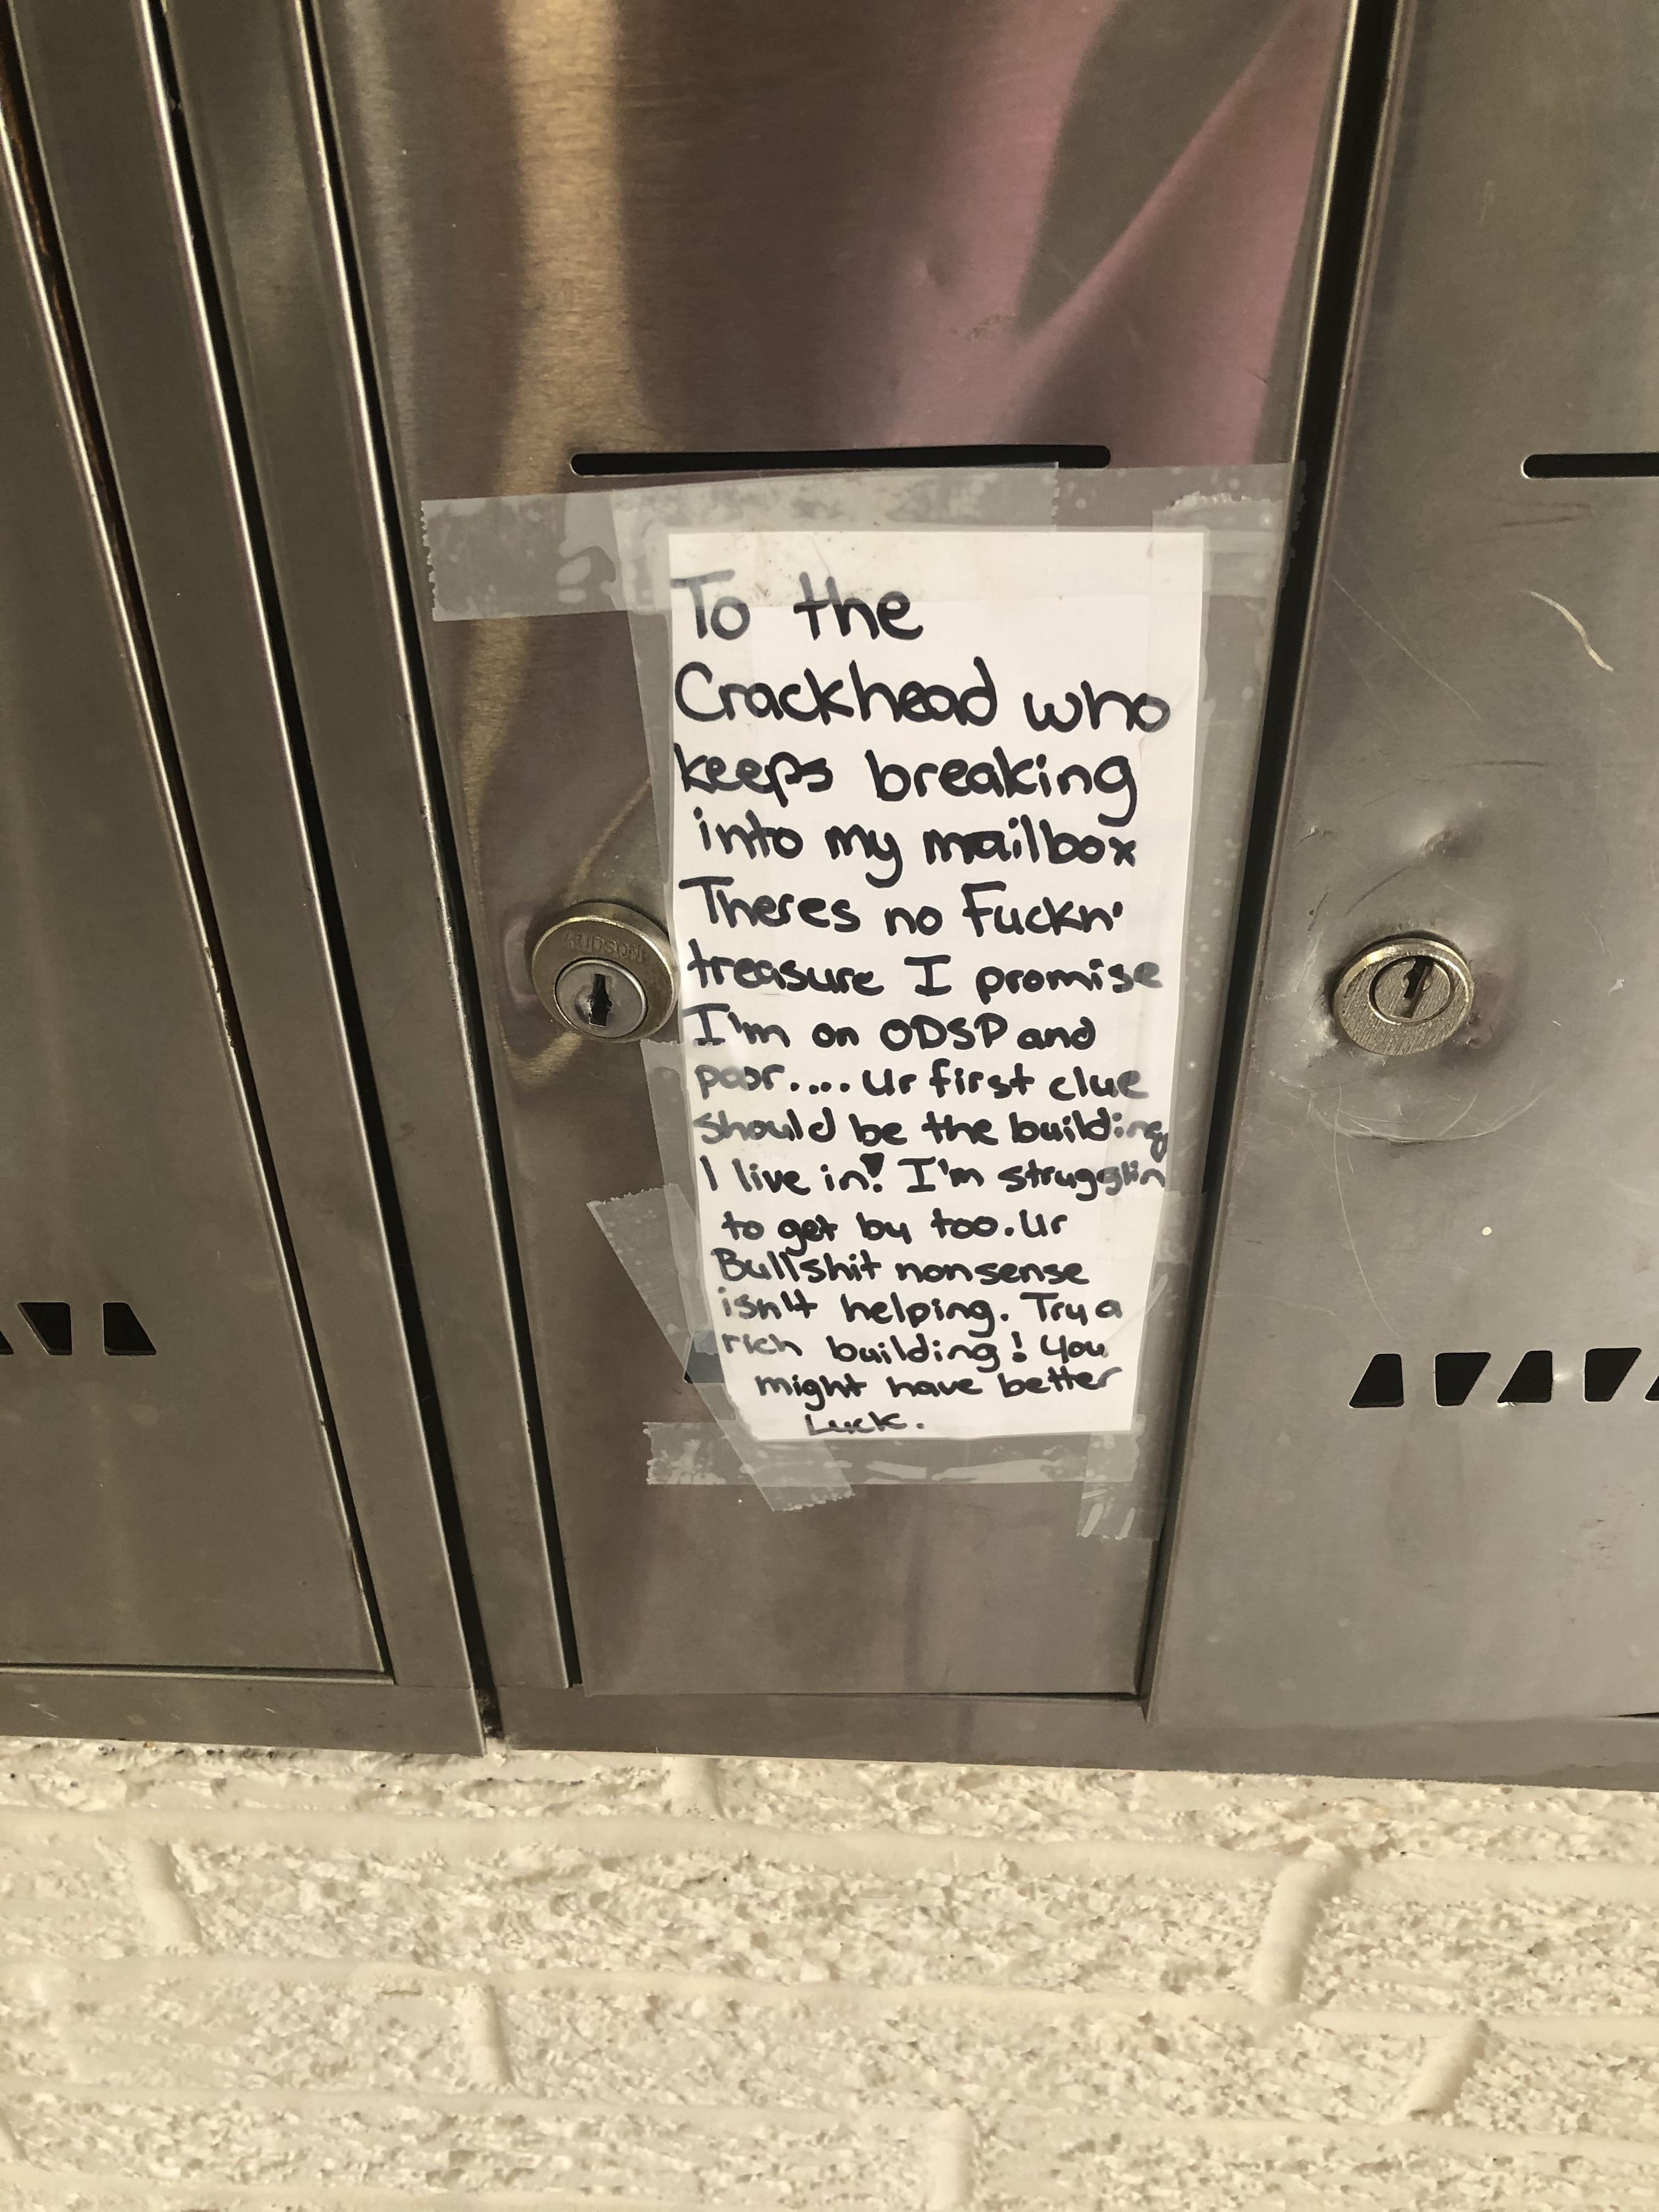 Someone keeps breaking into my mailbox, I responded